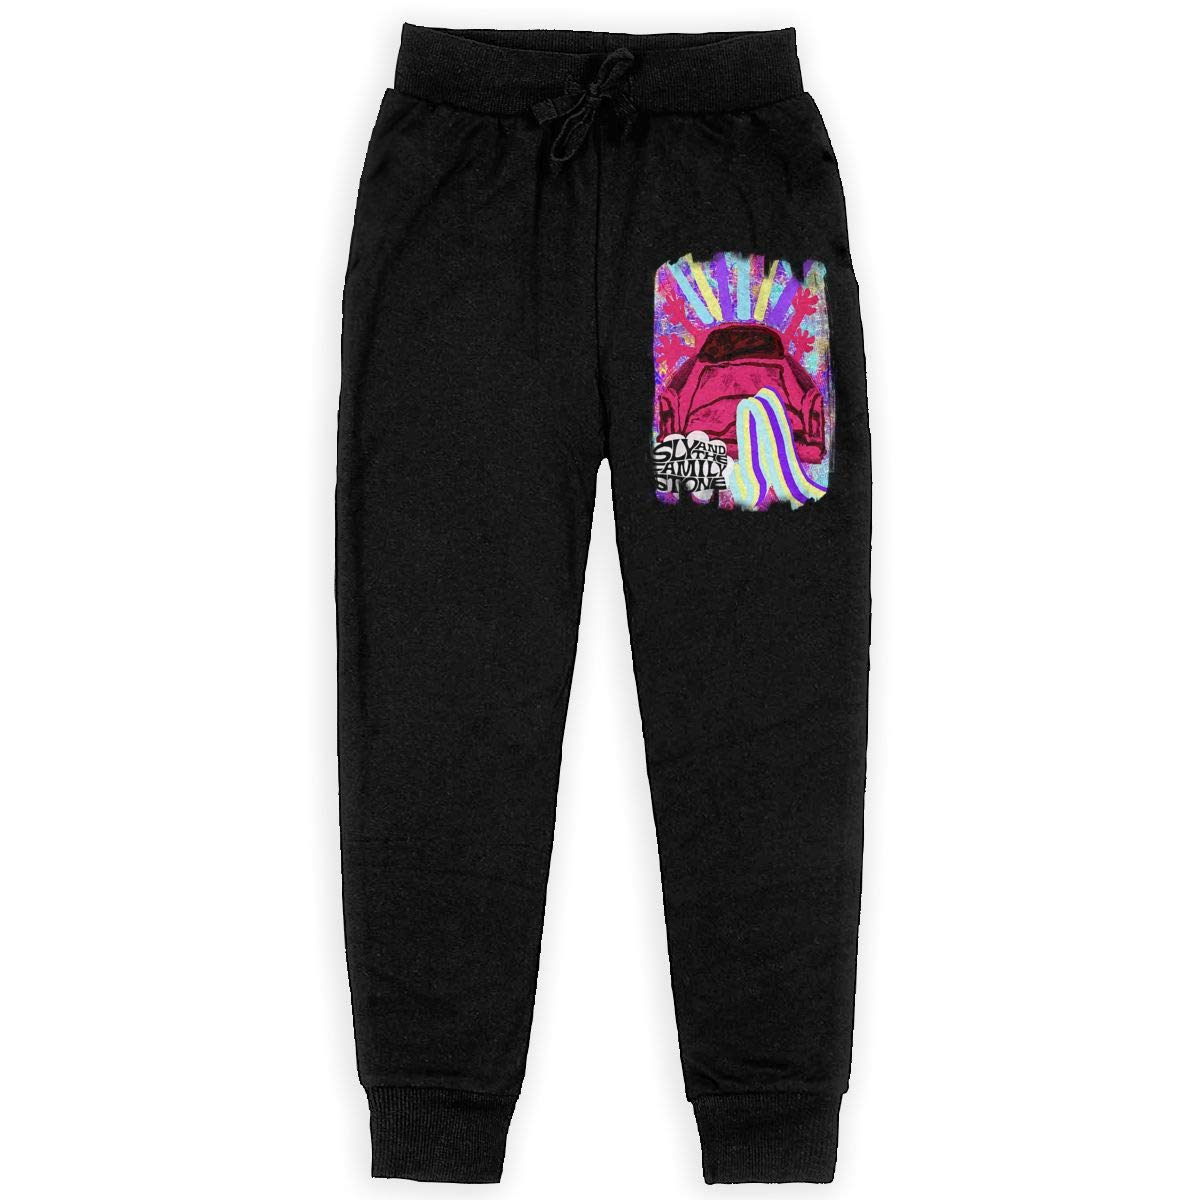 Unisex Teens Sly and The Family Stone Fashionable Music Band Fans Daily Sweatpants for Boys Gift with Pockets